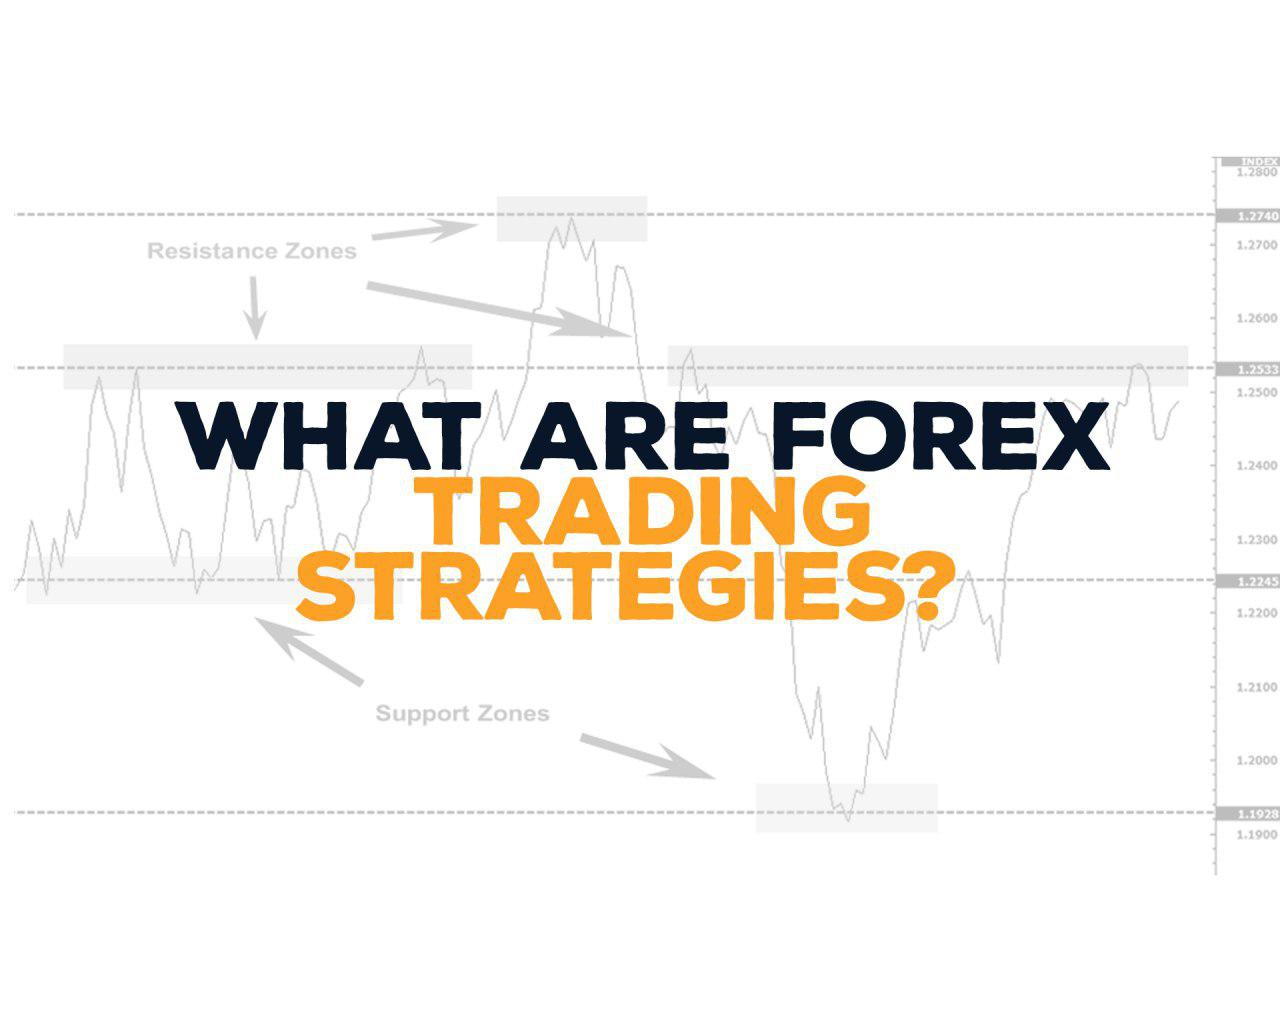 WHAT ARE FOREX TRADING STRATEGIES